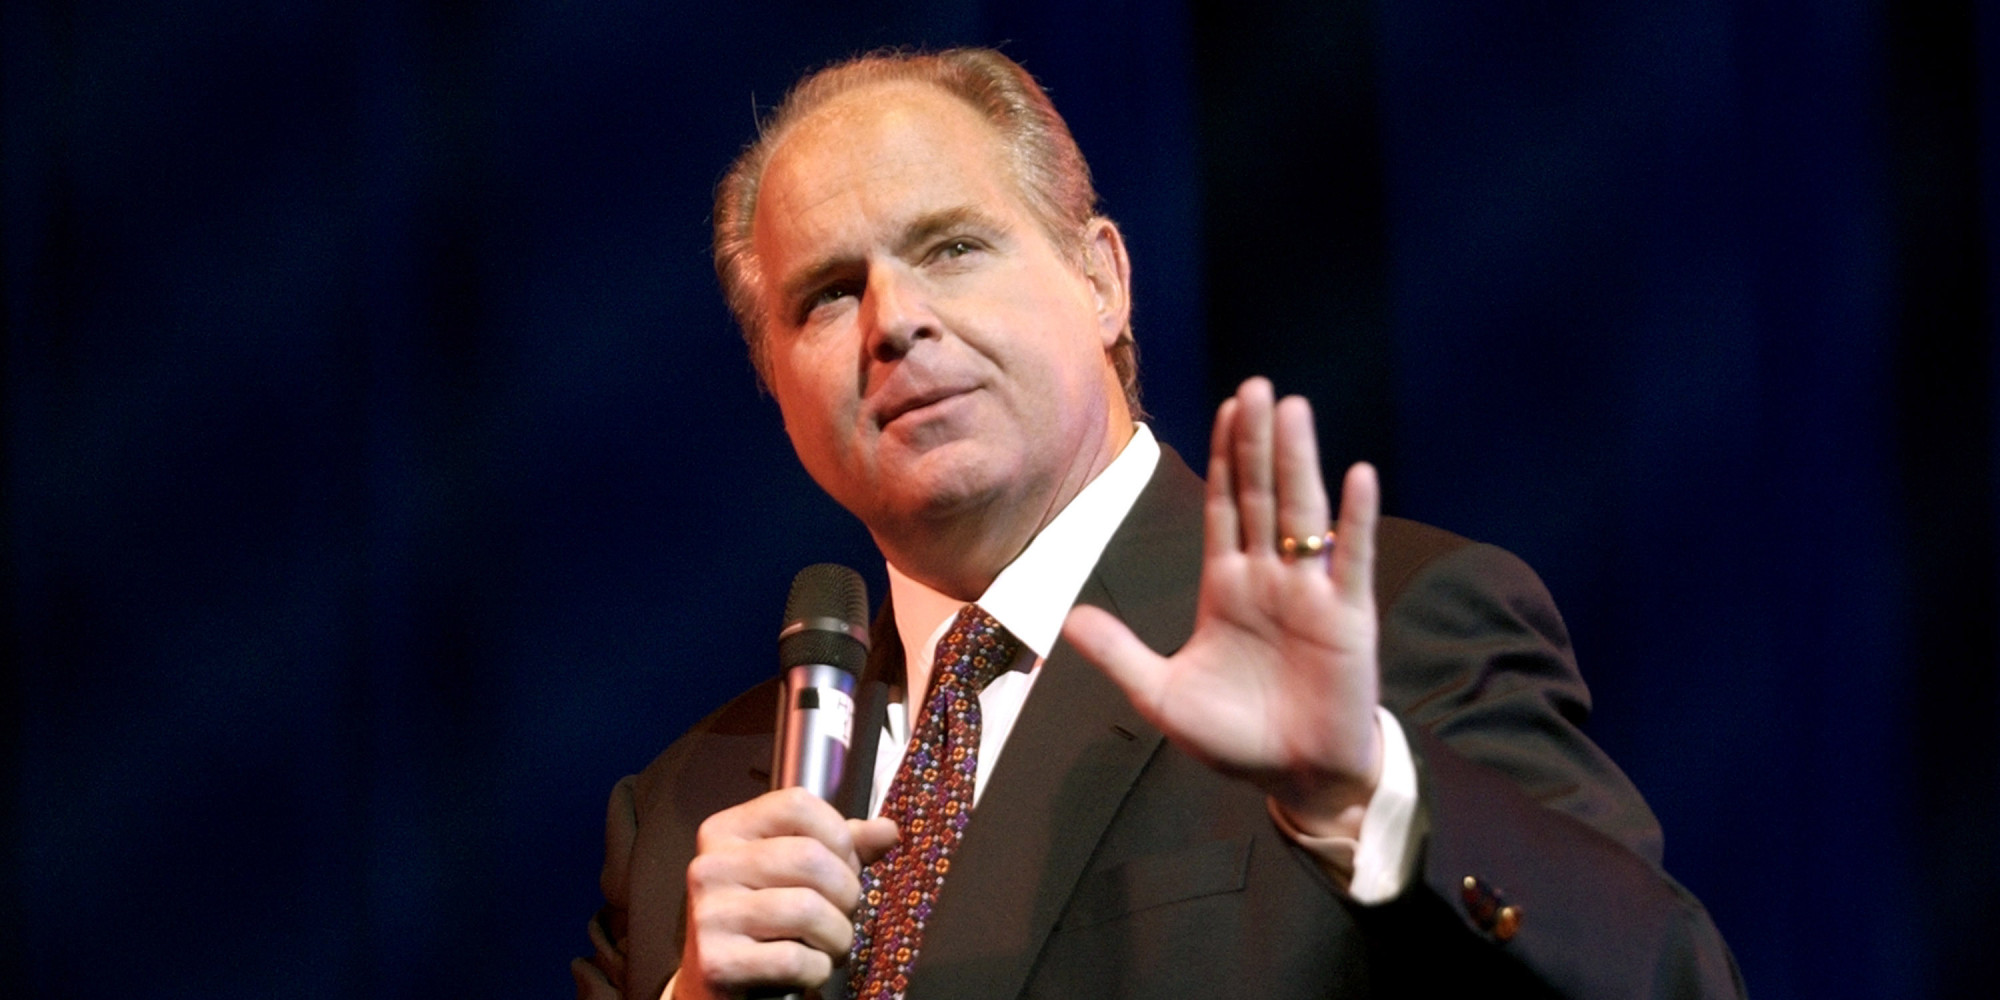 Rush Limbaugh holding a mic in his right hand